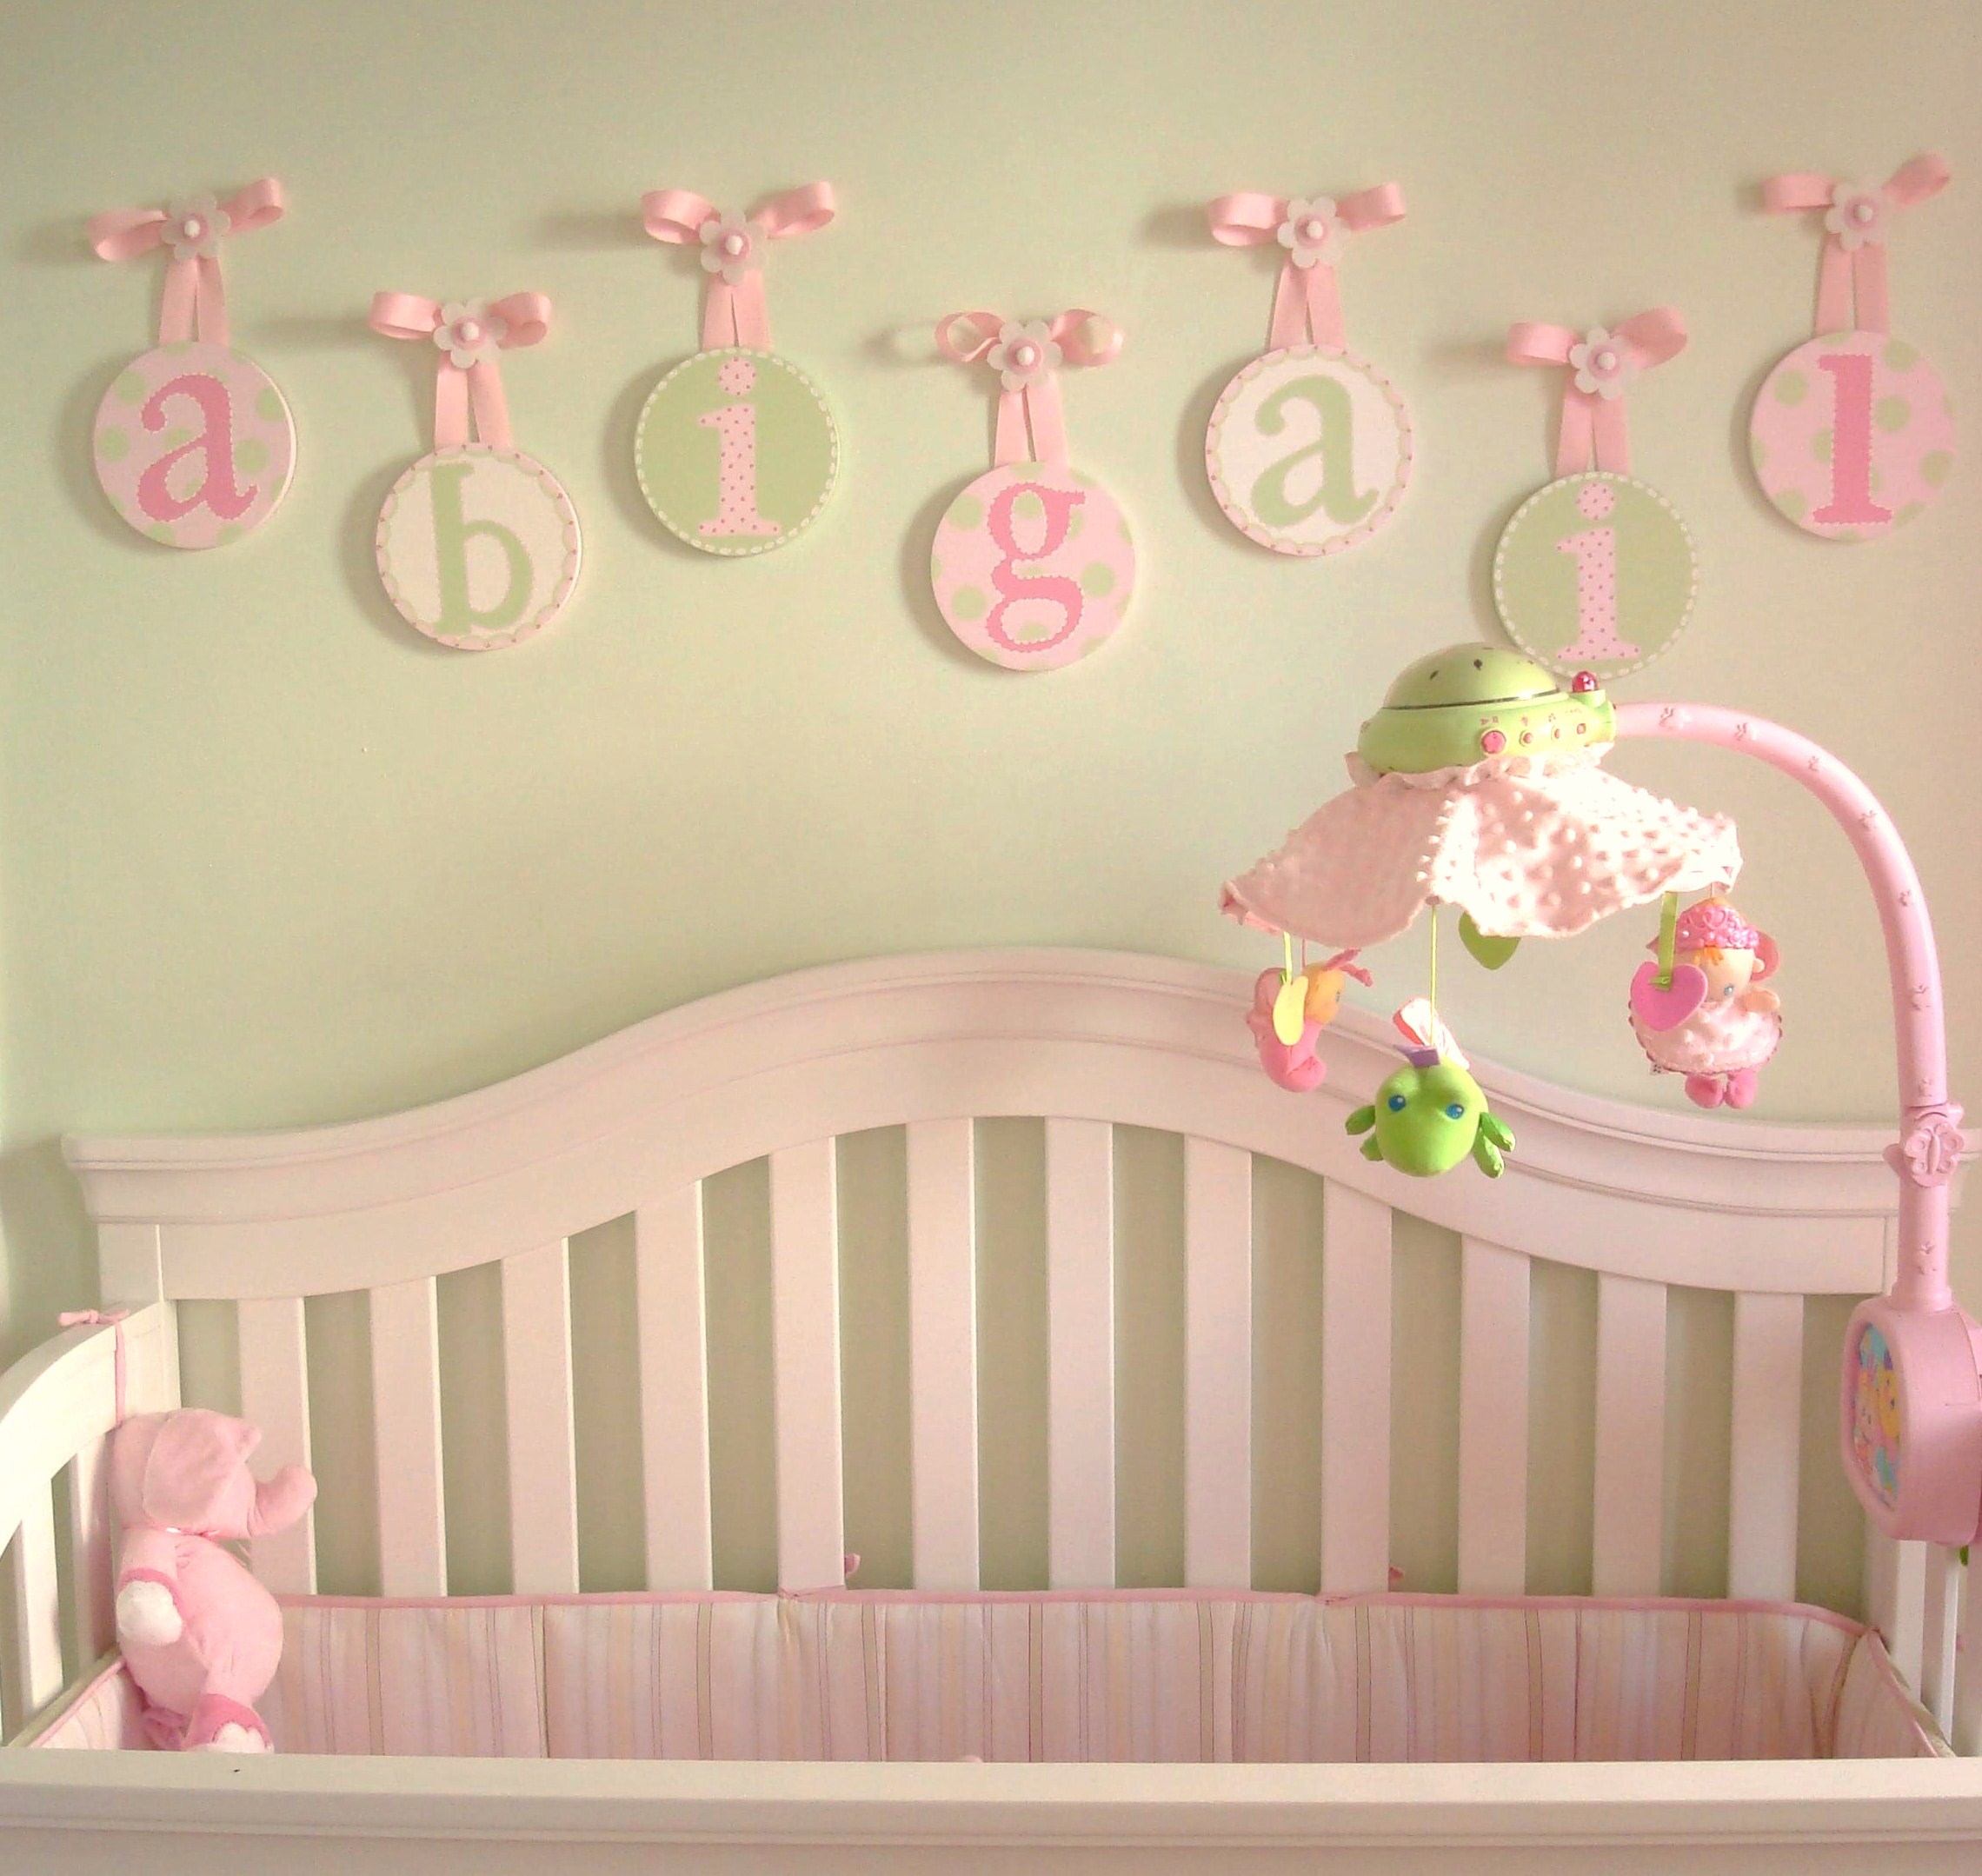 Hanging letters for Baby room decoration letters